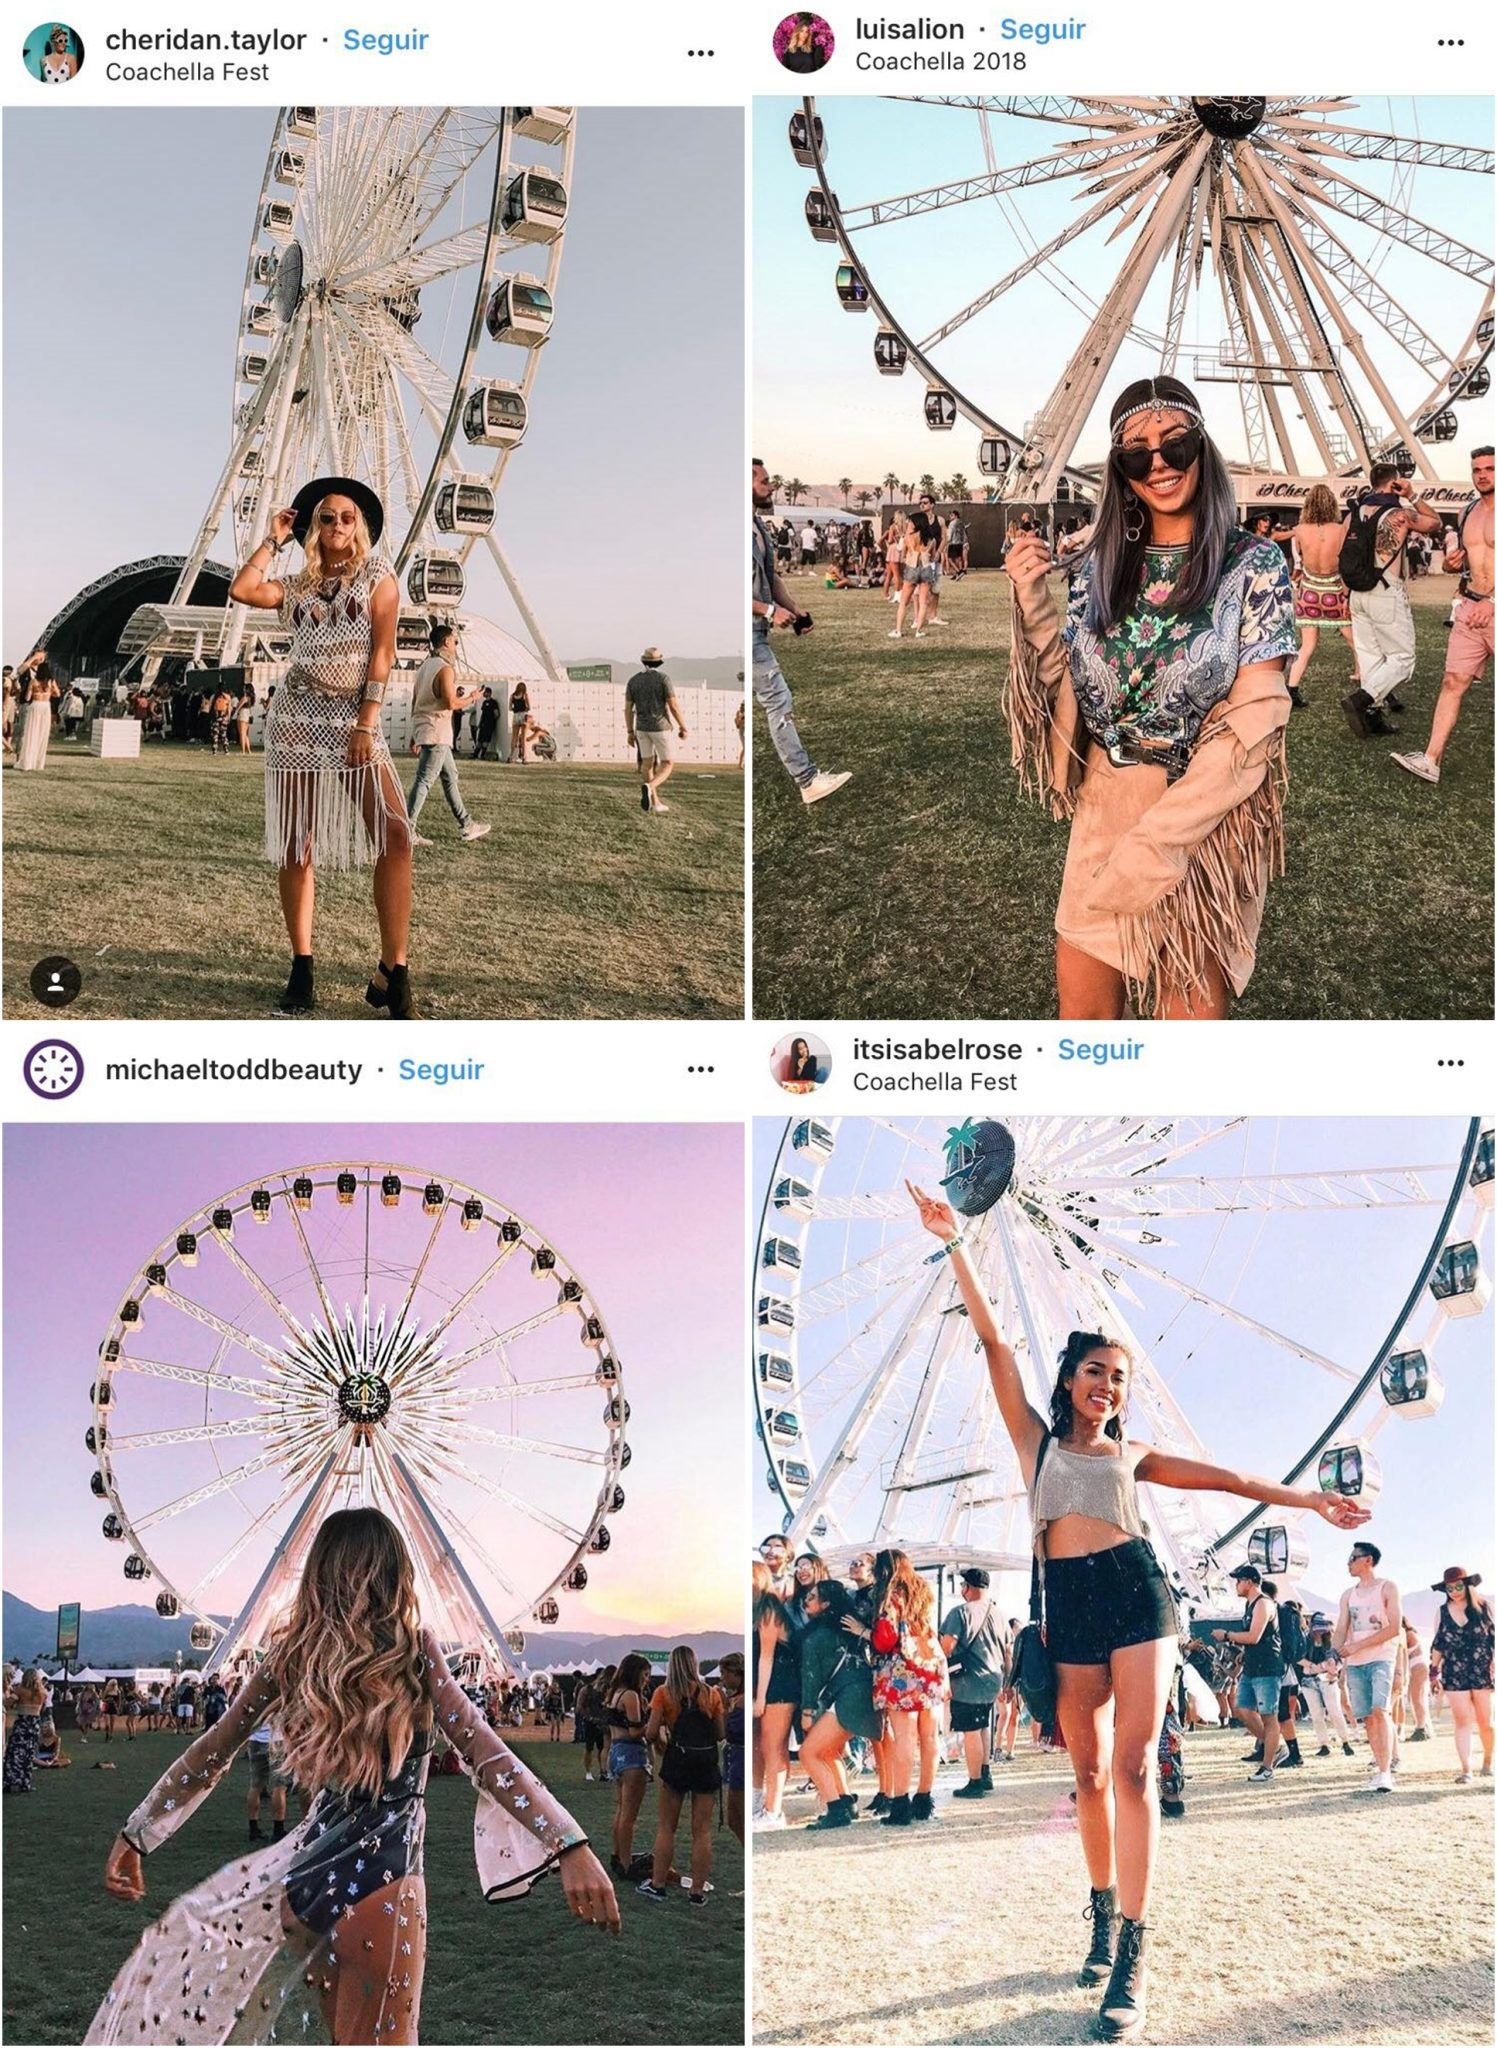 Galera estilosa no Coachella 01 - Os Looks Mais Cheios de Estilo do Coachella